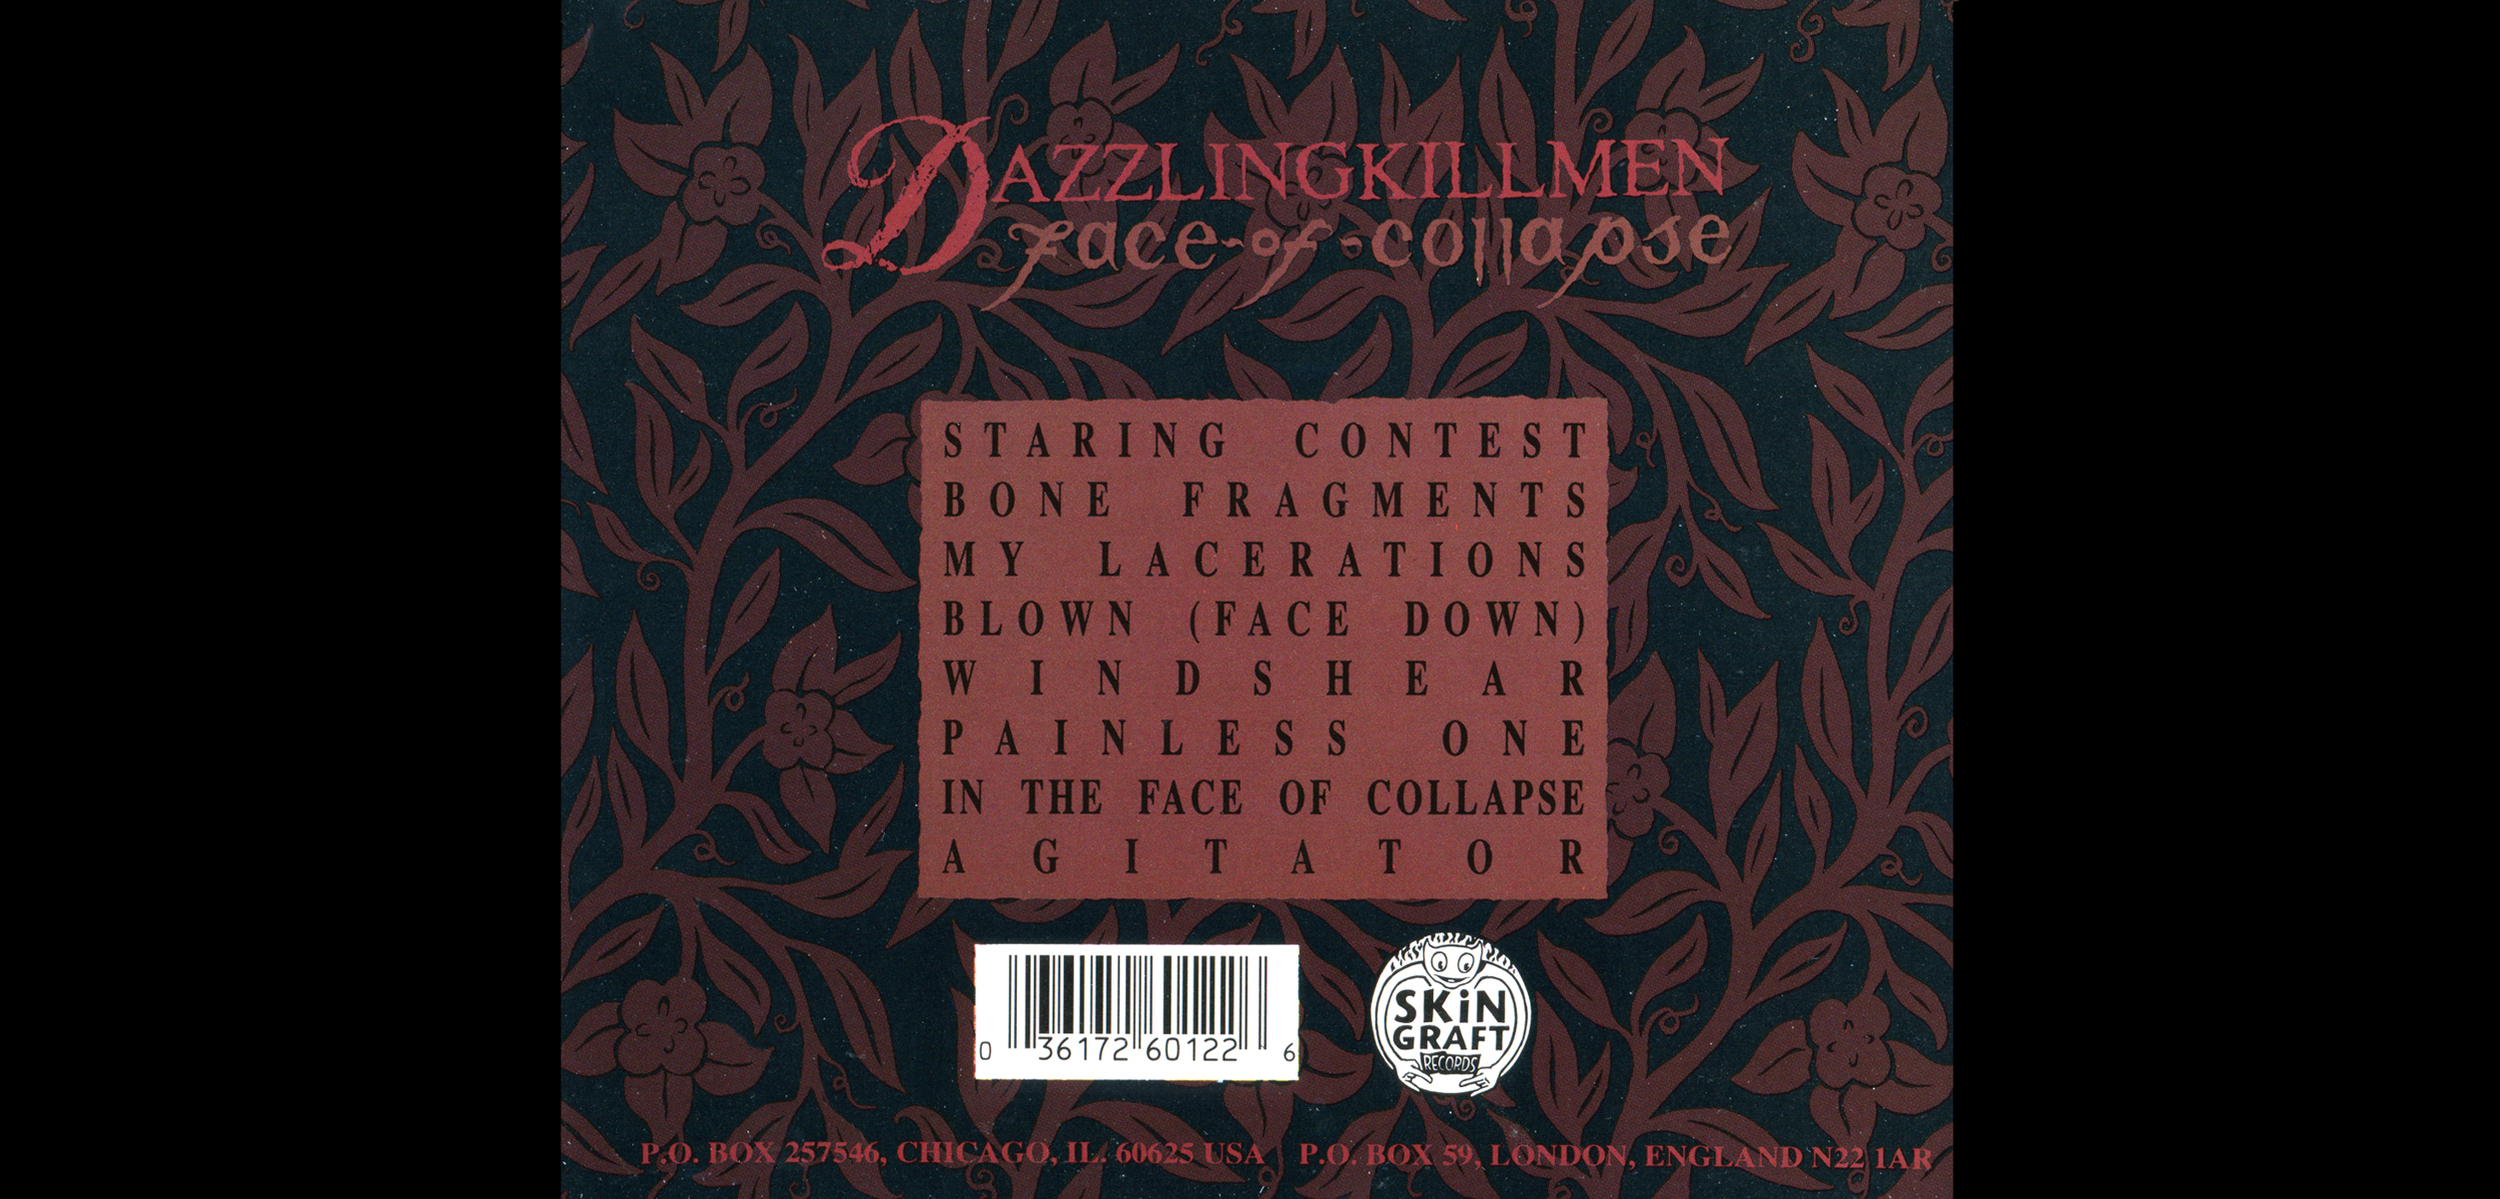 Dazzling Killmen,  Face of Collapse . CD Tray, Back.  1994. Pen and ink. Released by Skin Graft Records.